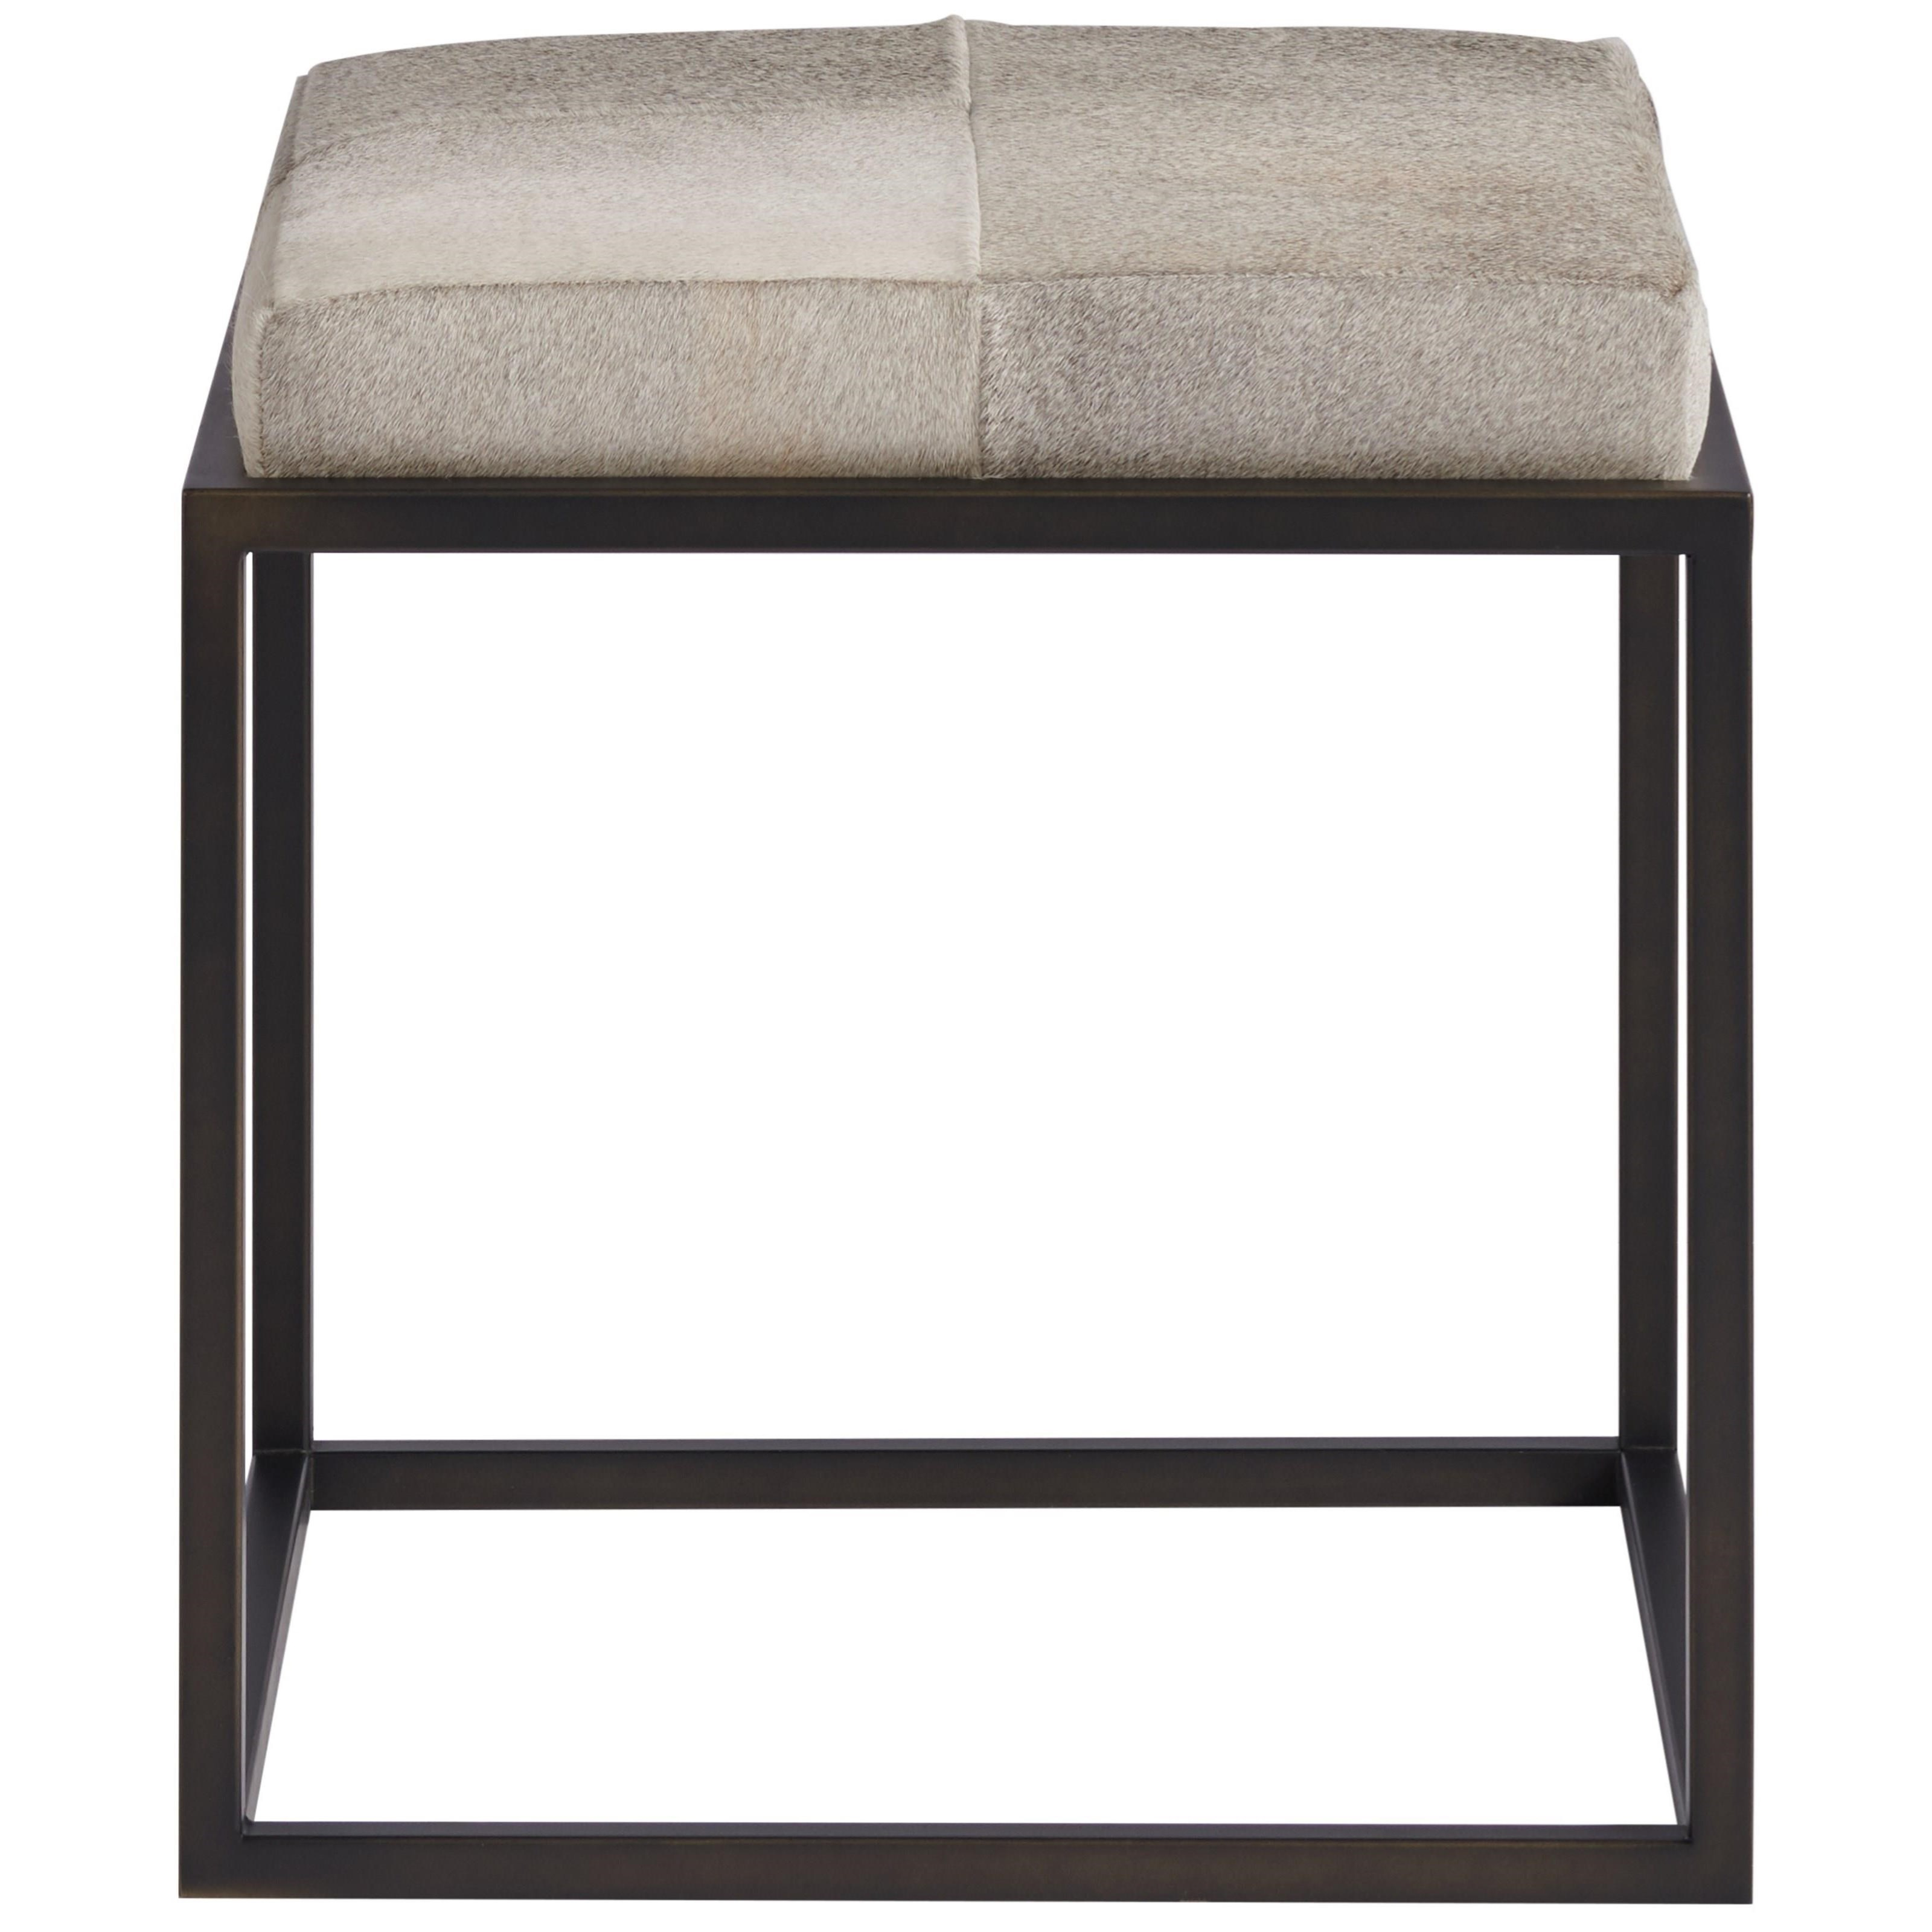 Accents Safari Ottoman by Universal at Baer's Furniture